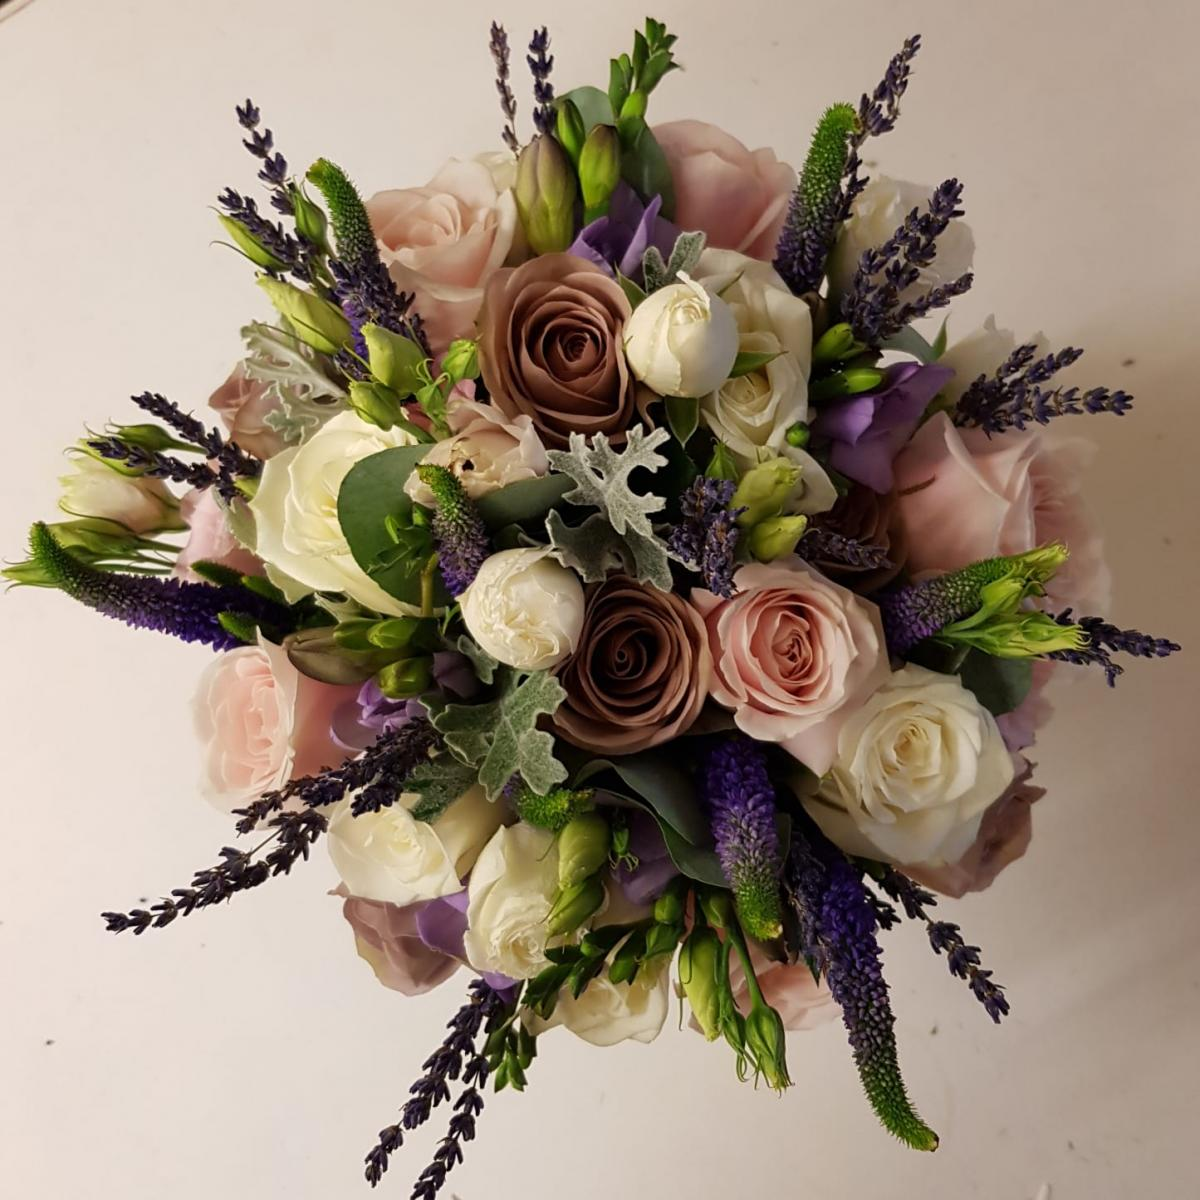 bridal-handtied-wedding-flowers-rugeley-florist-staffordshire-022